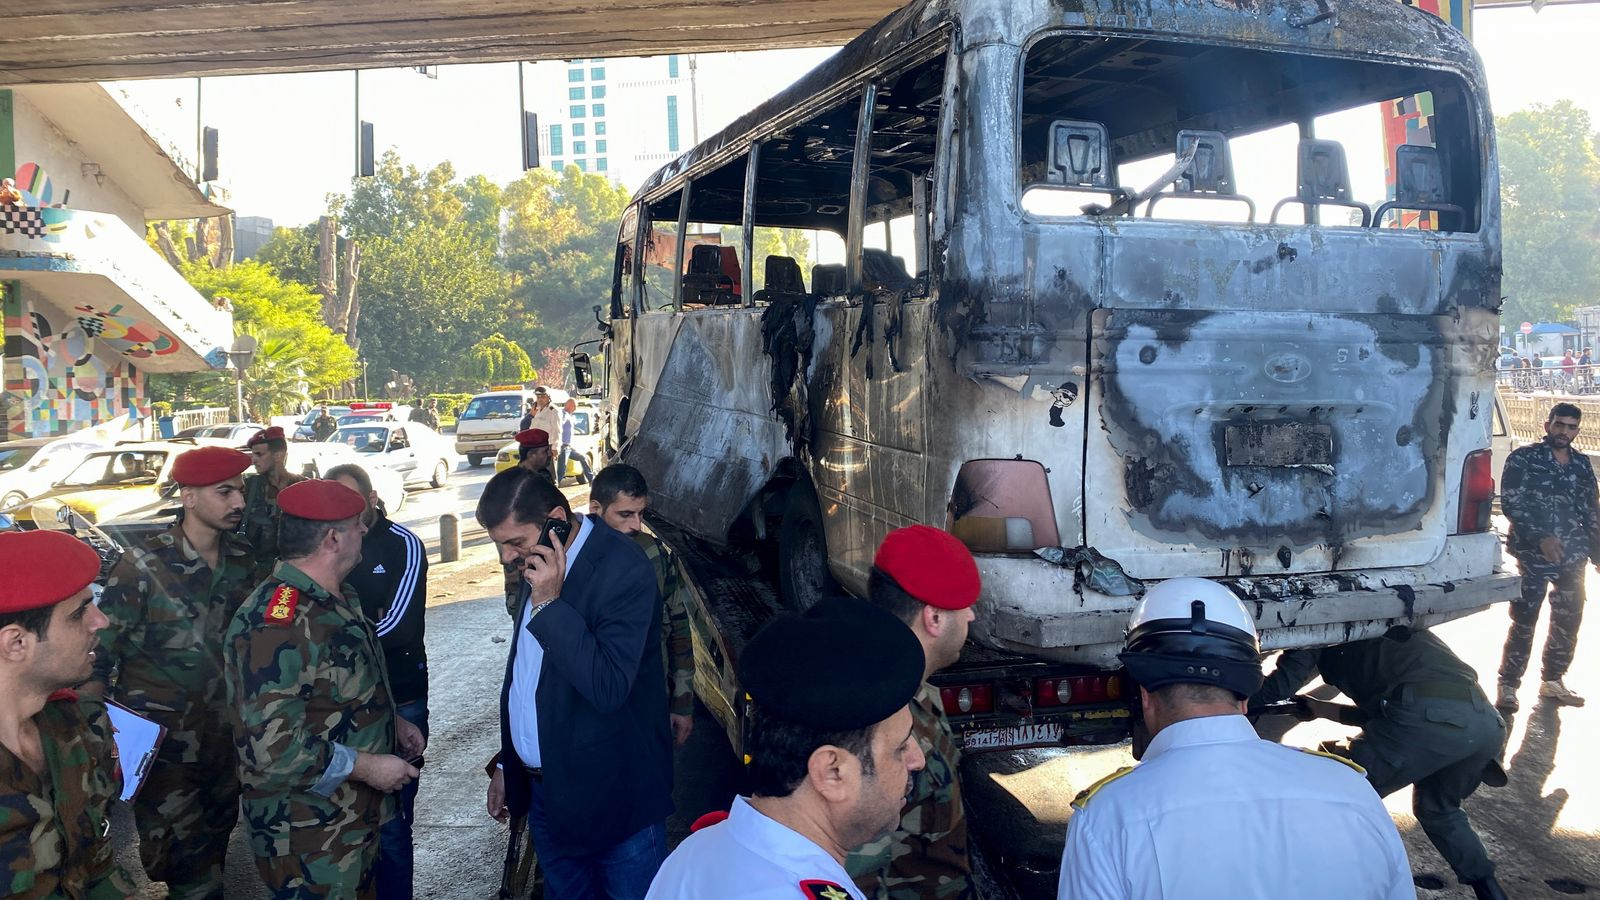 Syria: 13 killed and three injured after explosion destroys bus in Damascus